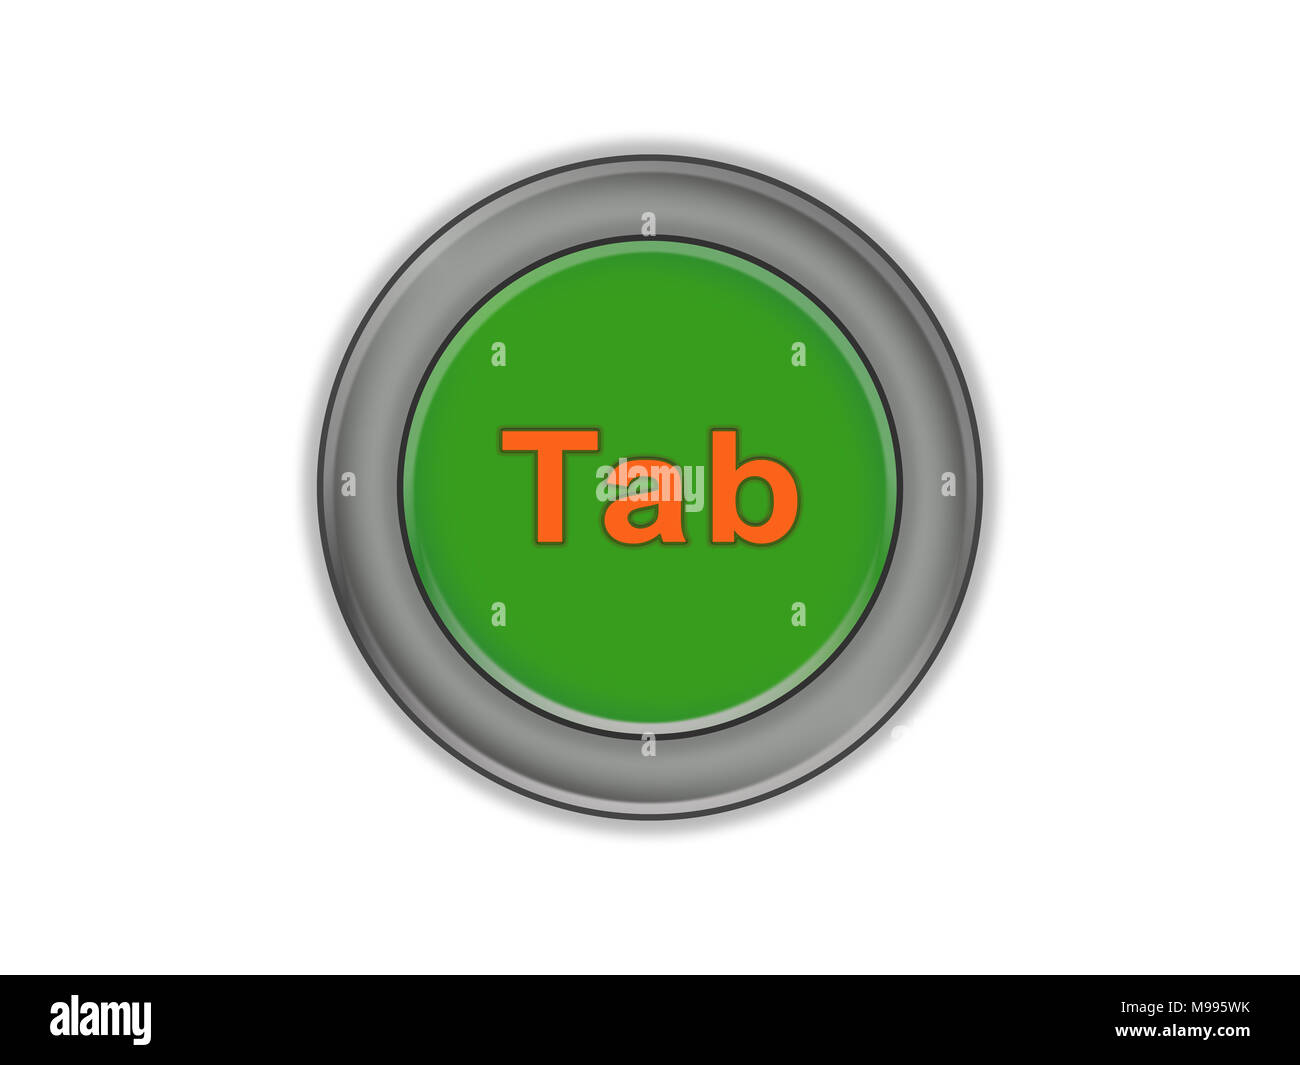 The Tab inscription is on a green volume button, white background - Stock Image